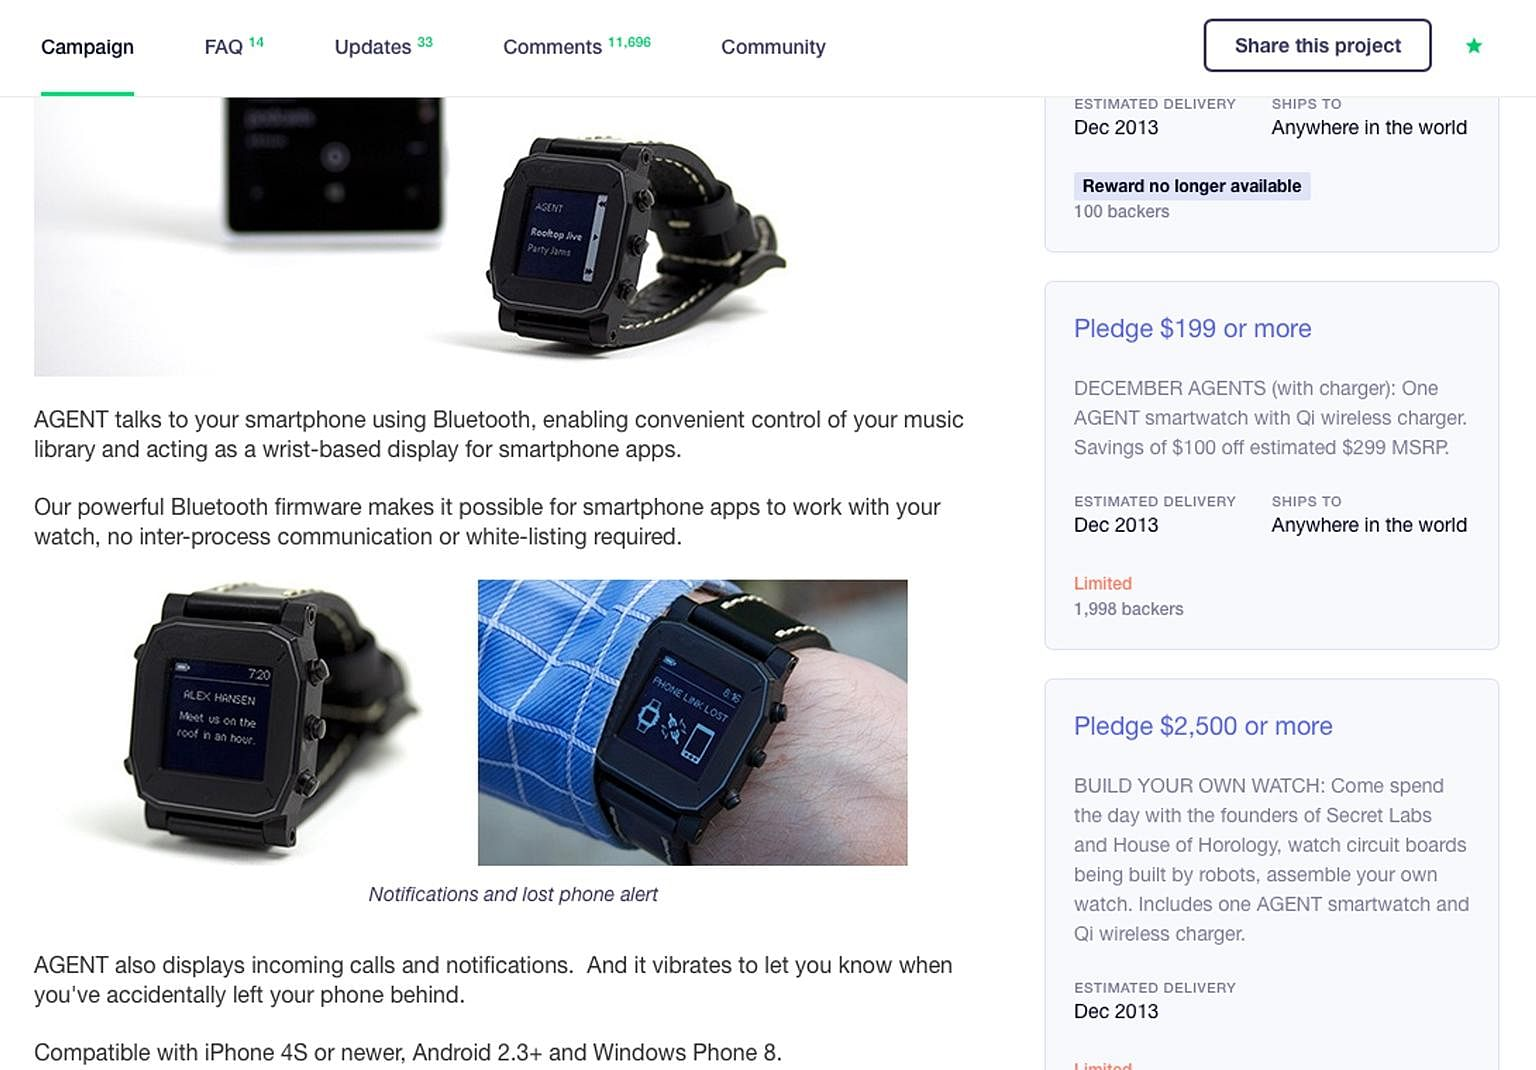 The Kickstarter campaign site for the Agent smartwatch. Originally slated to be launched in early 2014, the project has gone cold, with the last update by the developer a year ago.